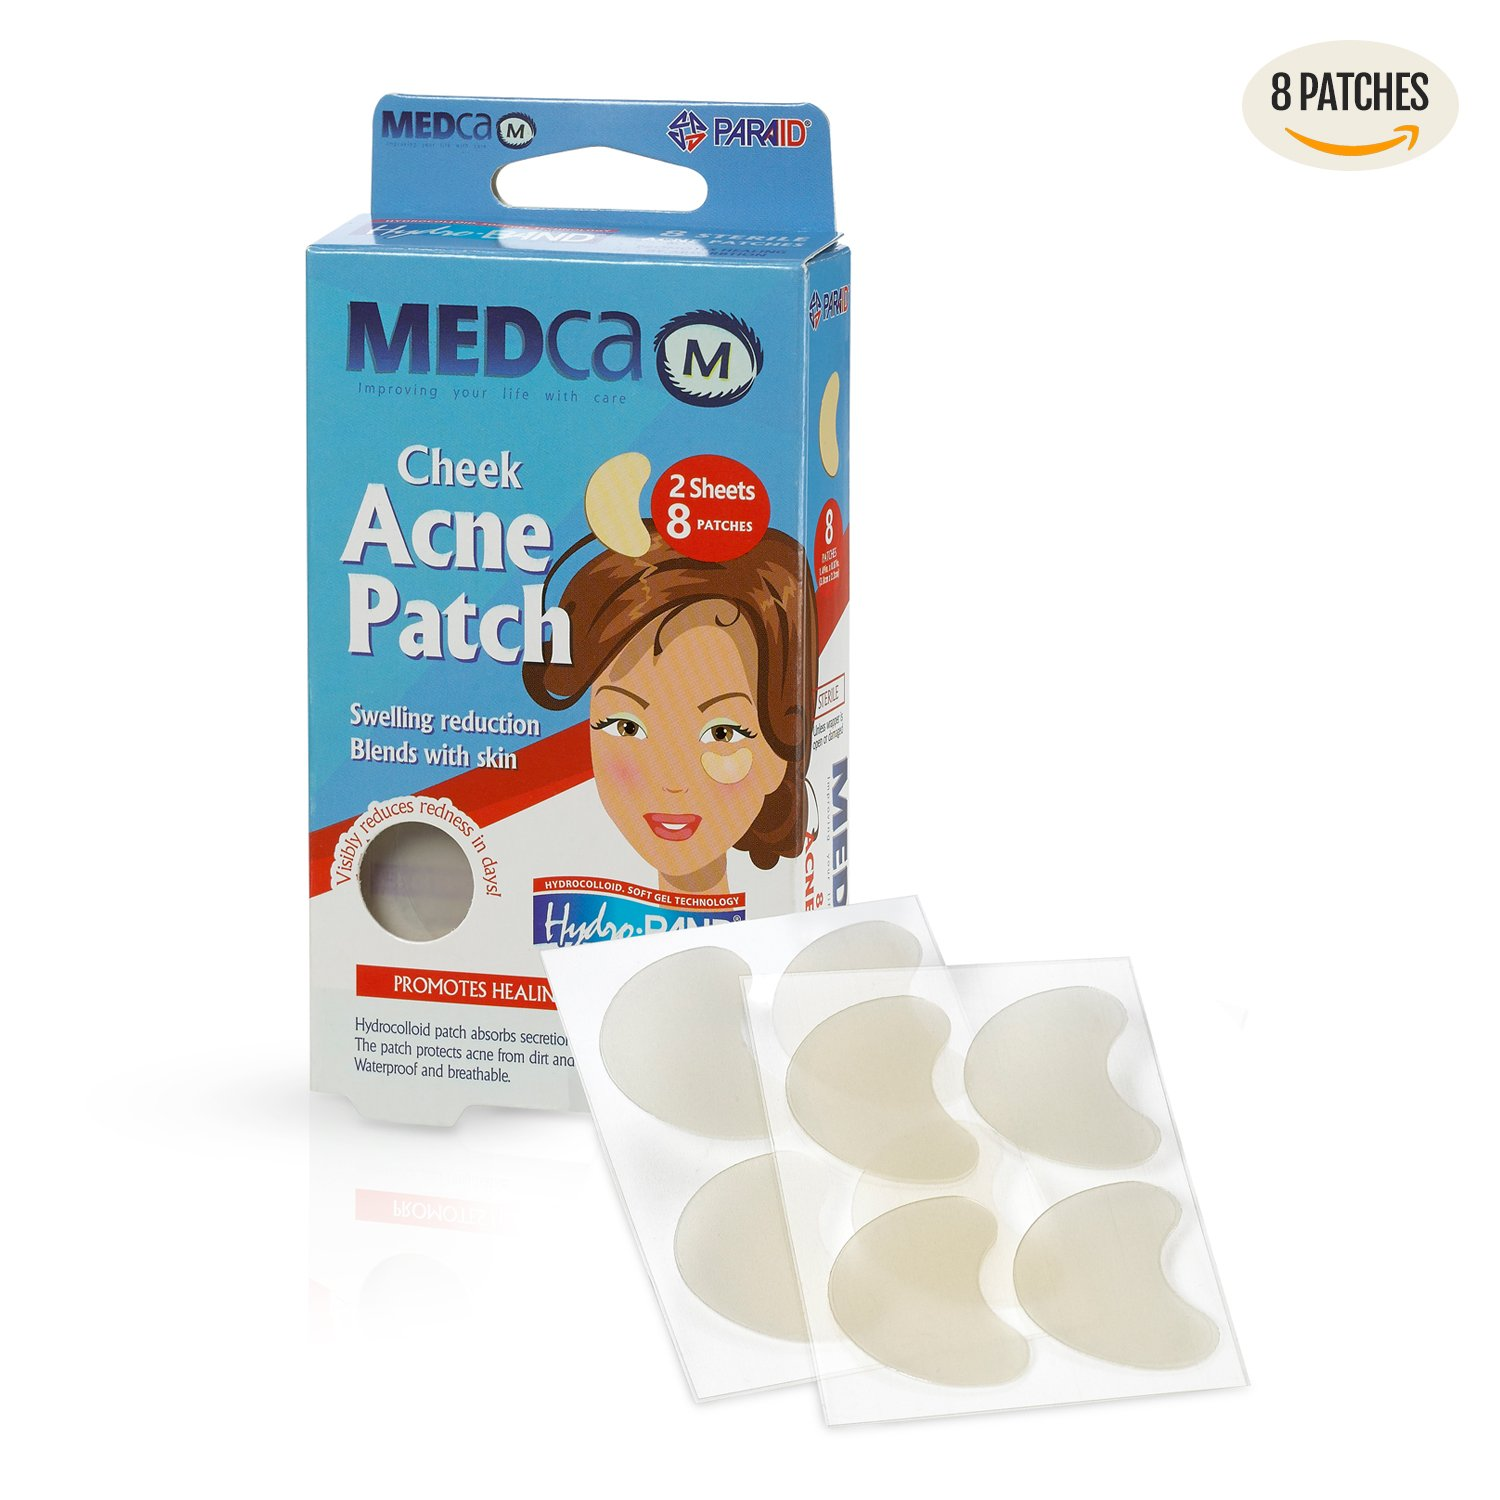 Acne Care Pimple Patch Absorbing Cover - Cheek Size Acne Spot Treatment Hydrocolloid Bandage Face & Skin Spot Patch Conceals Acne, Reduces Pimples and Blackheads MEDca